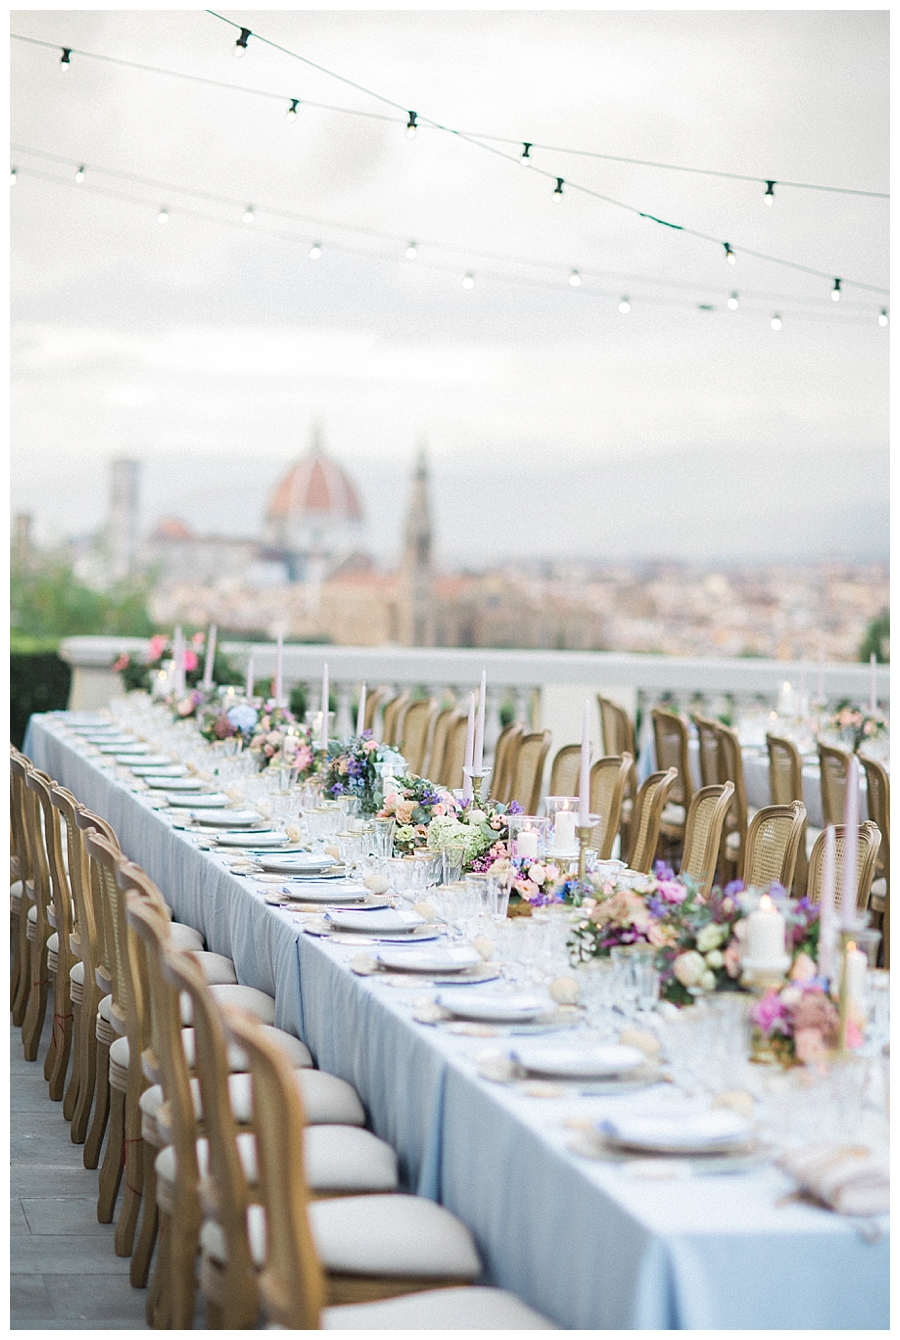 Al fresco italian wedding reception at Villa La Vedetta in Florence